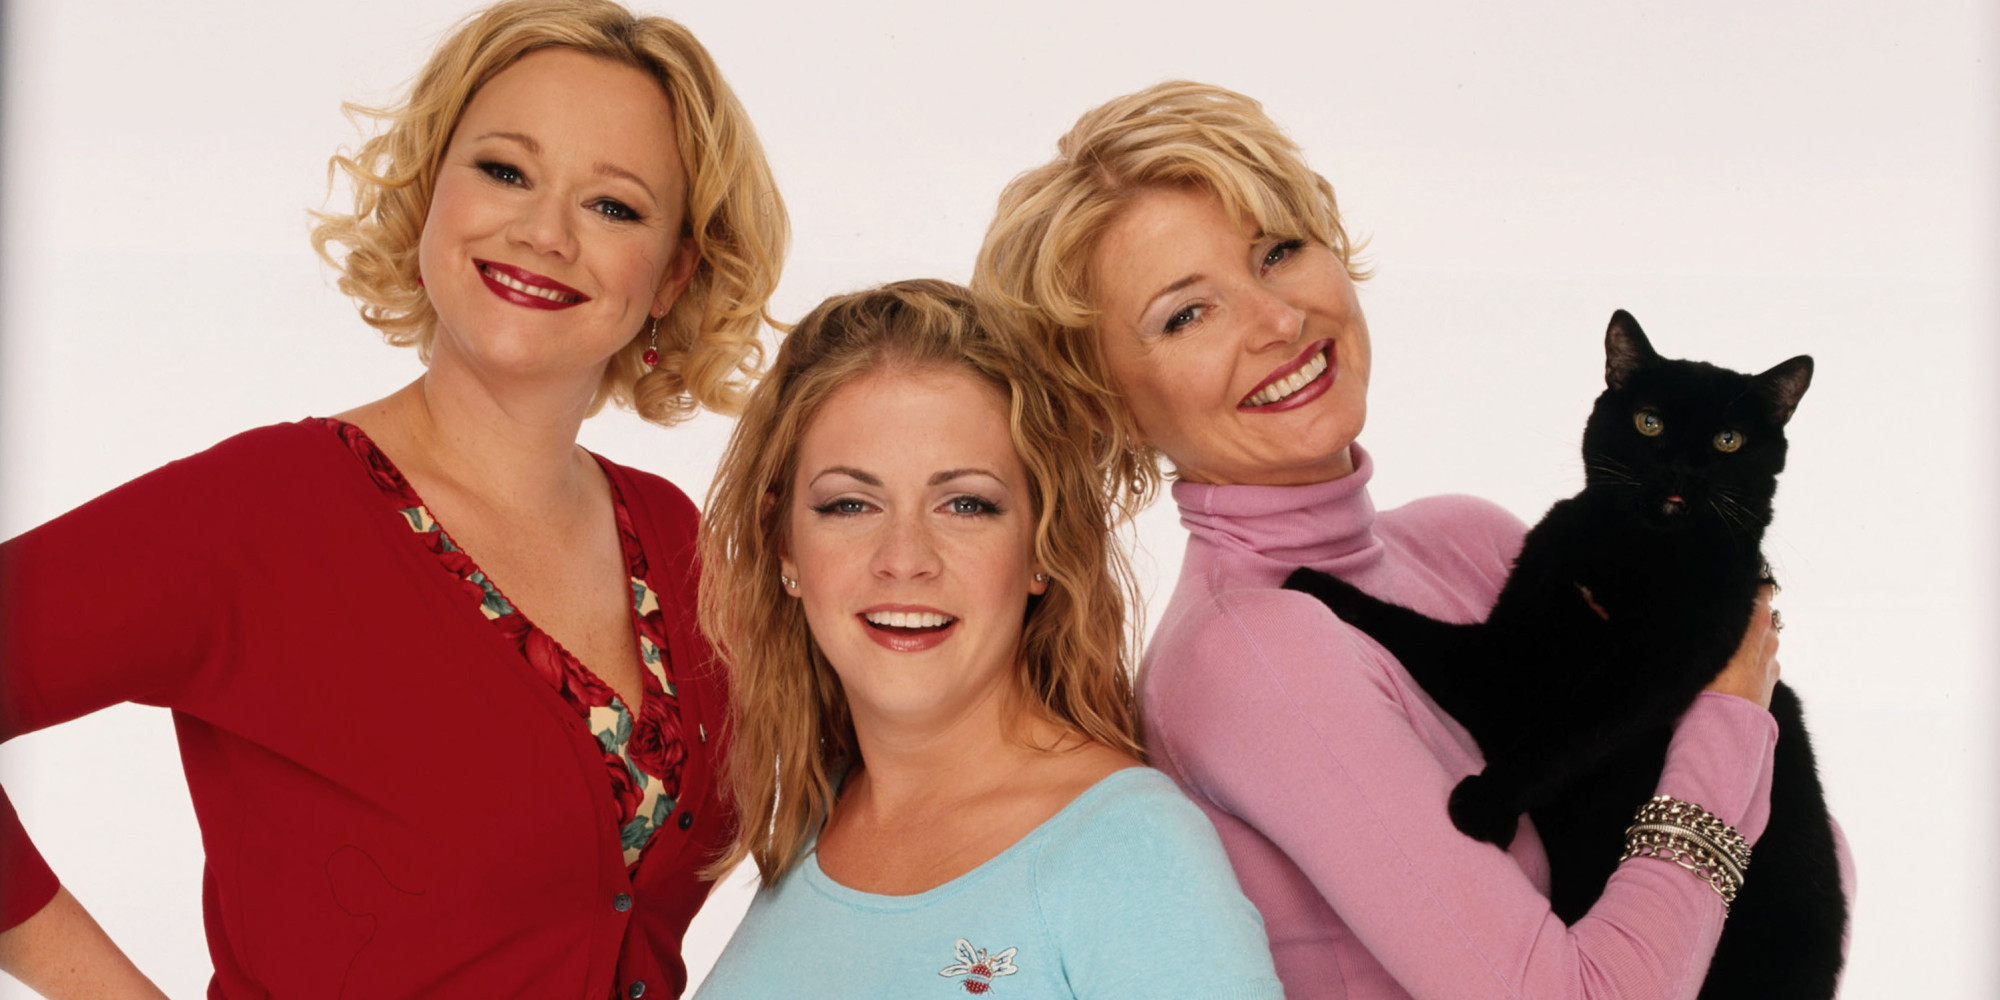 'Sabrina, The Teenage Witch' Reunion Is Happening On ... Sabrina The Teenage Witch